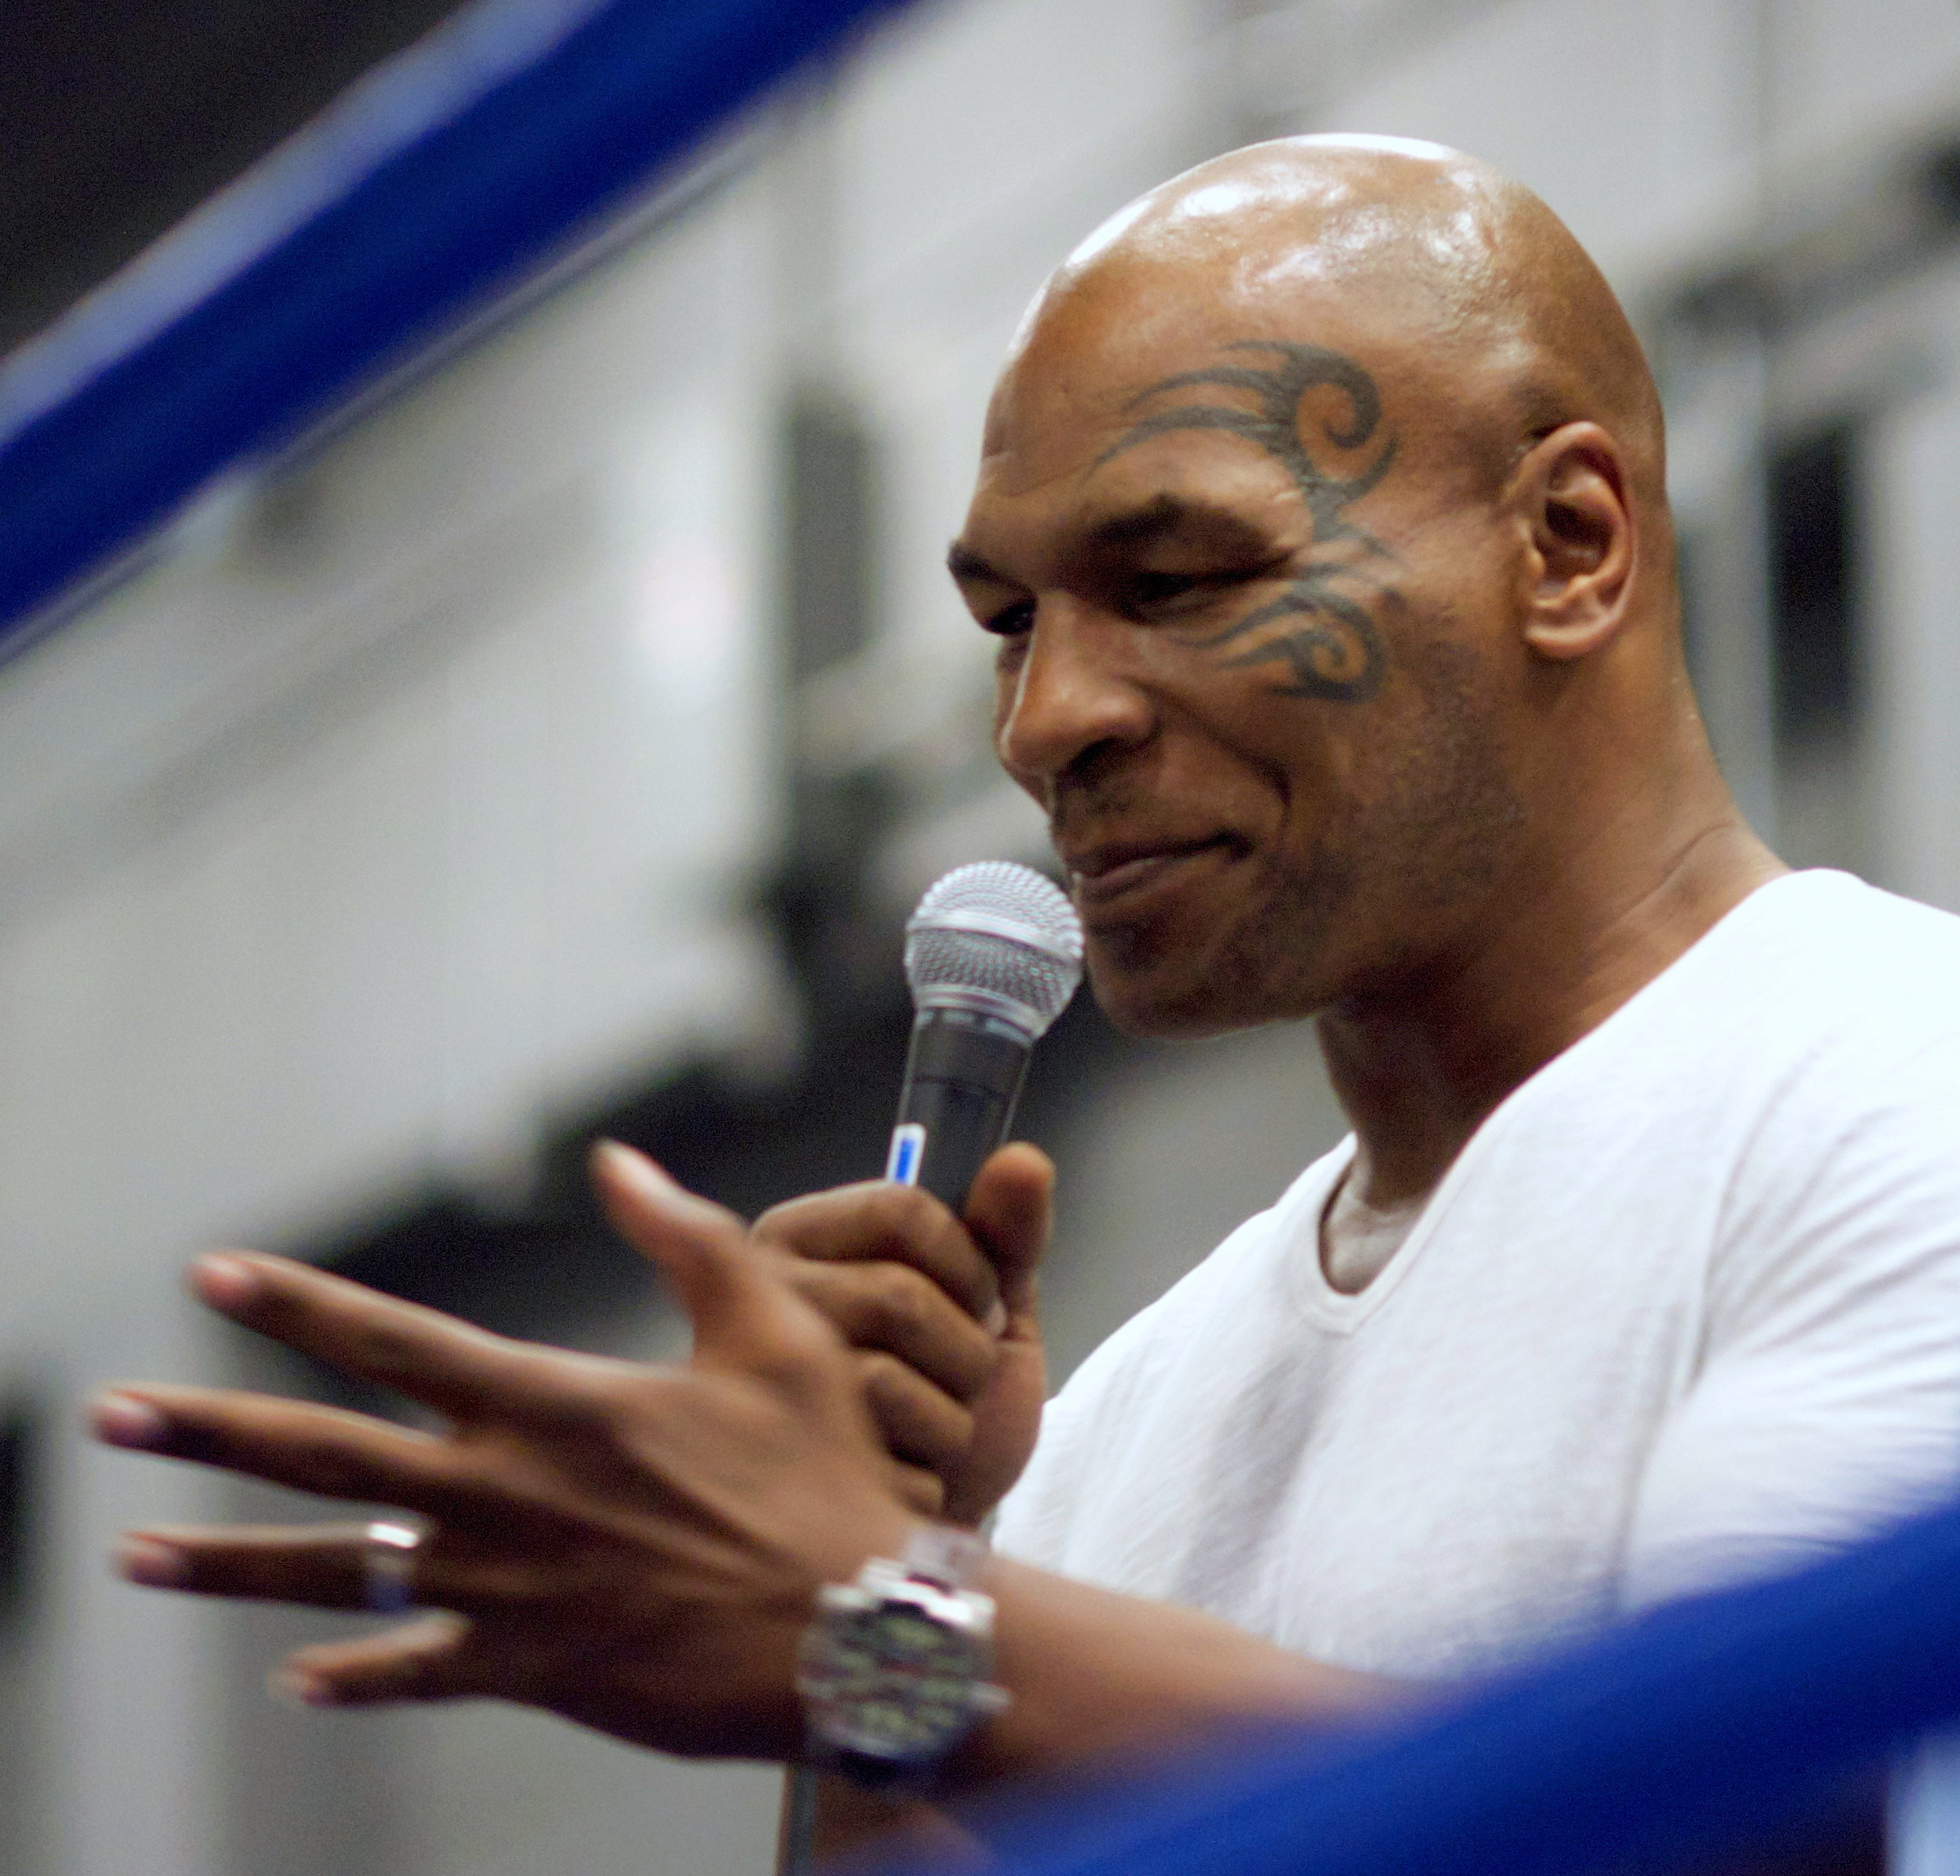 Mike Tyson's famous tattoo that started it all.